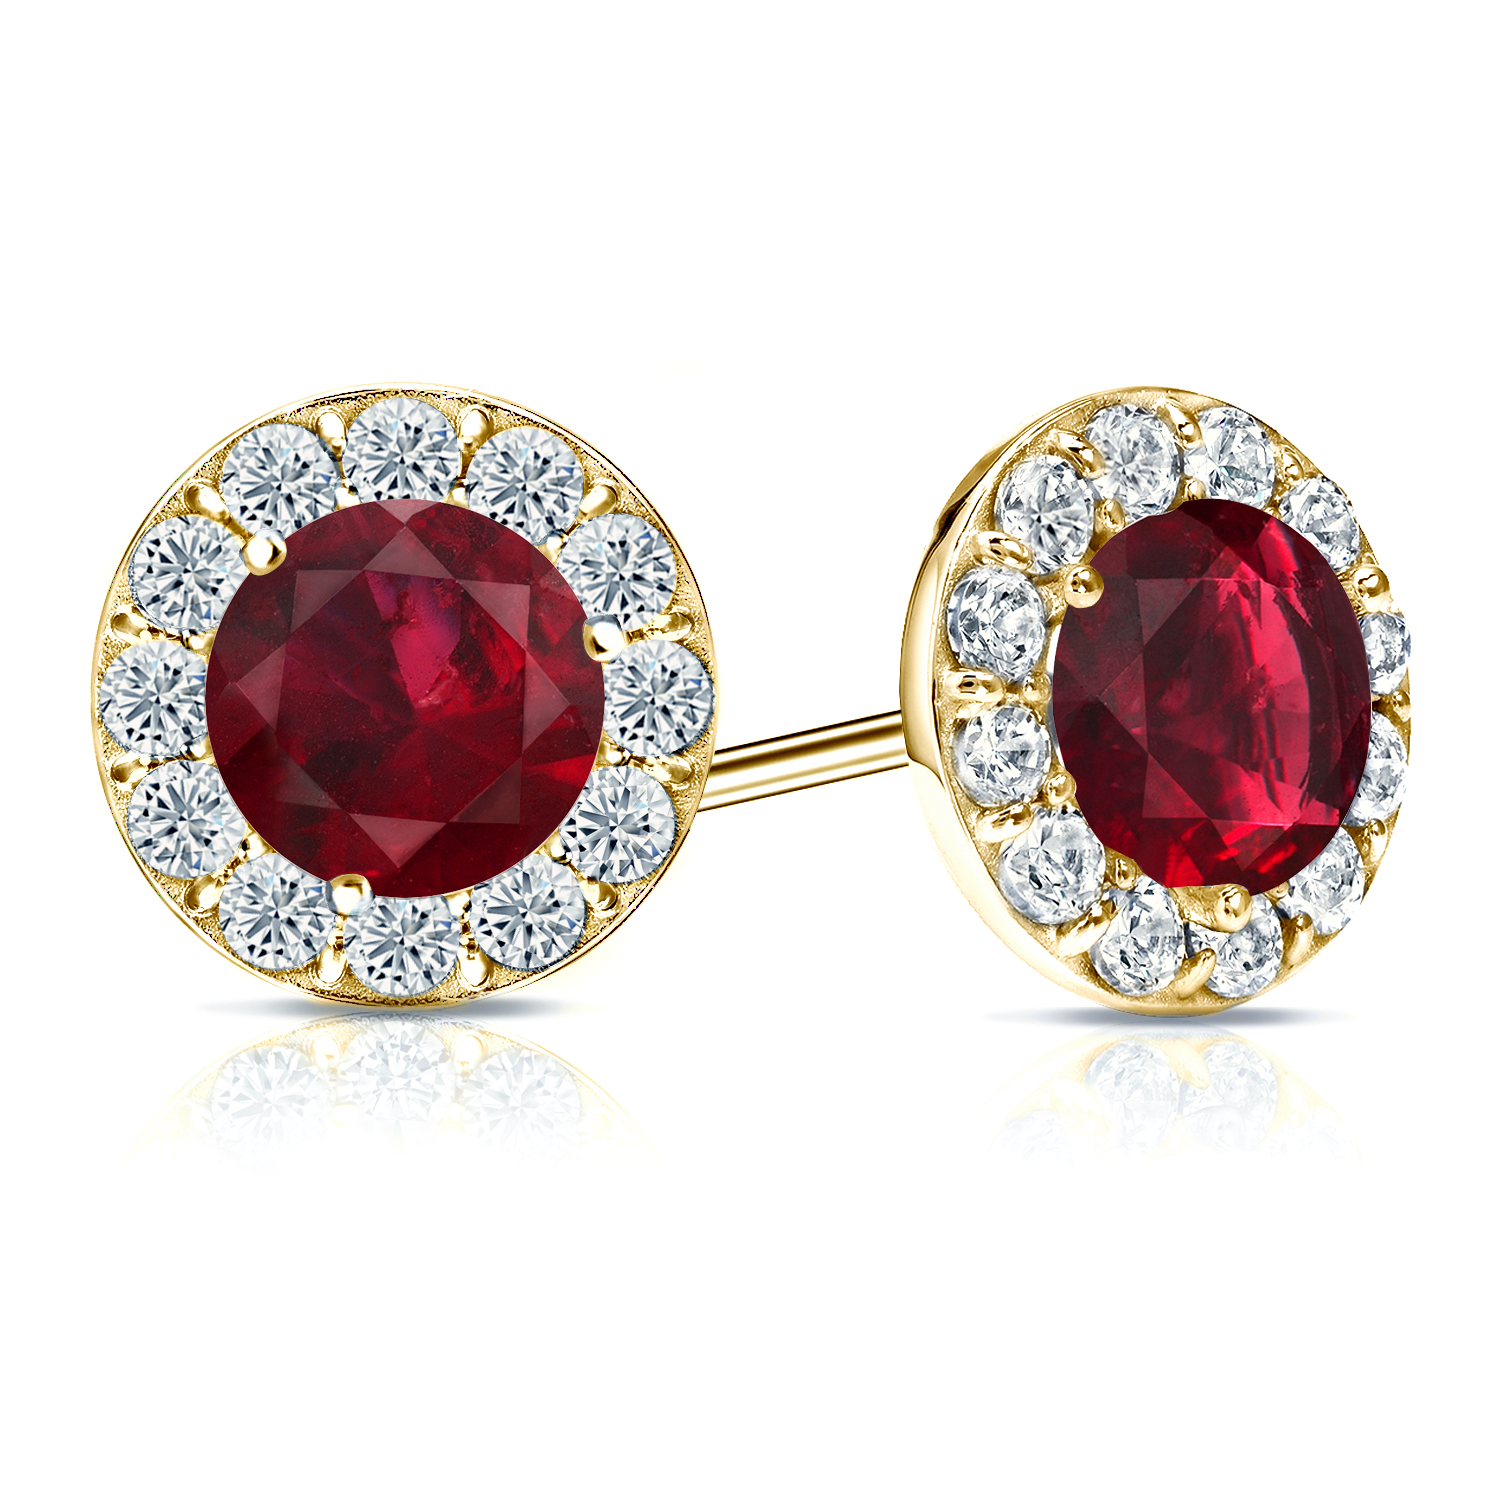 Certified 0.50 cttw Round Ruby Gemstone Stud Earrings in 18k Yellow Gold Halo (AAA)